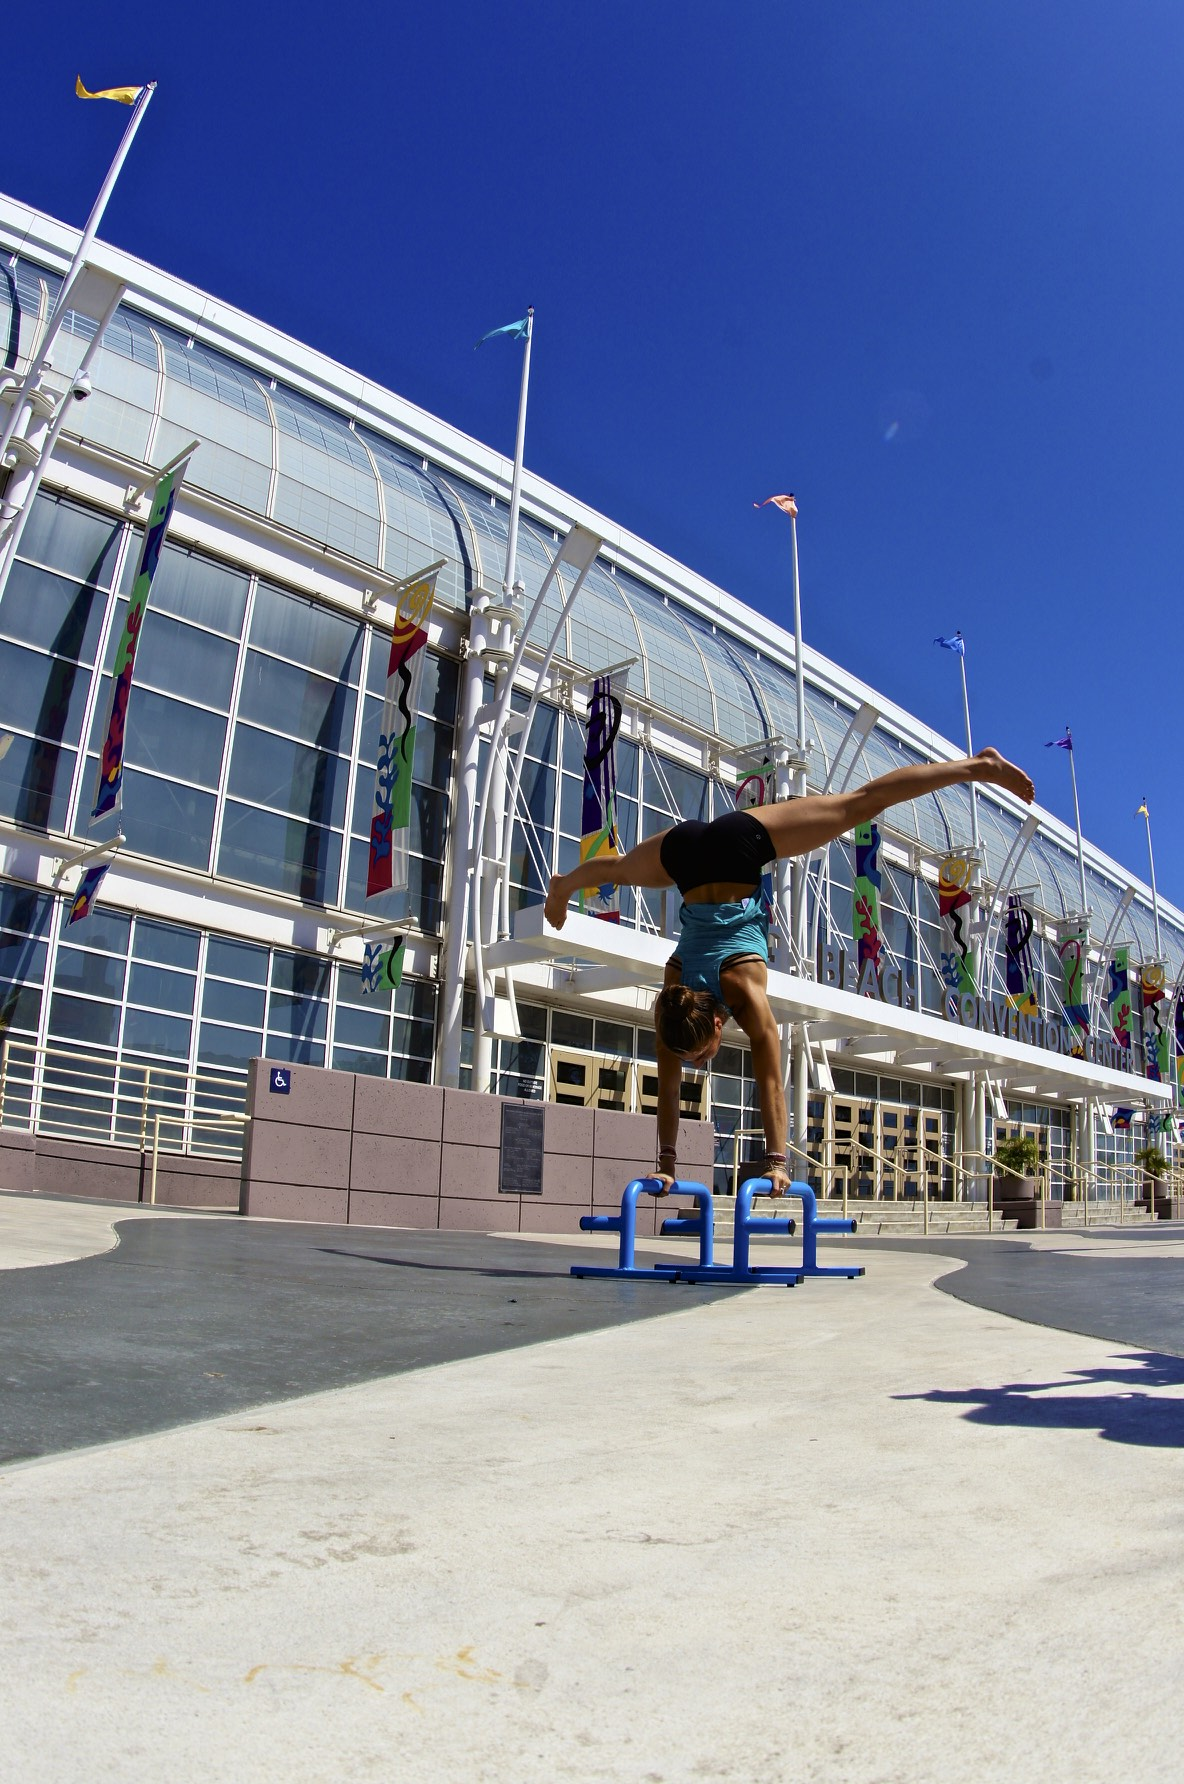 Handstand-parallettes-m3-bars